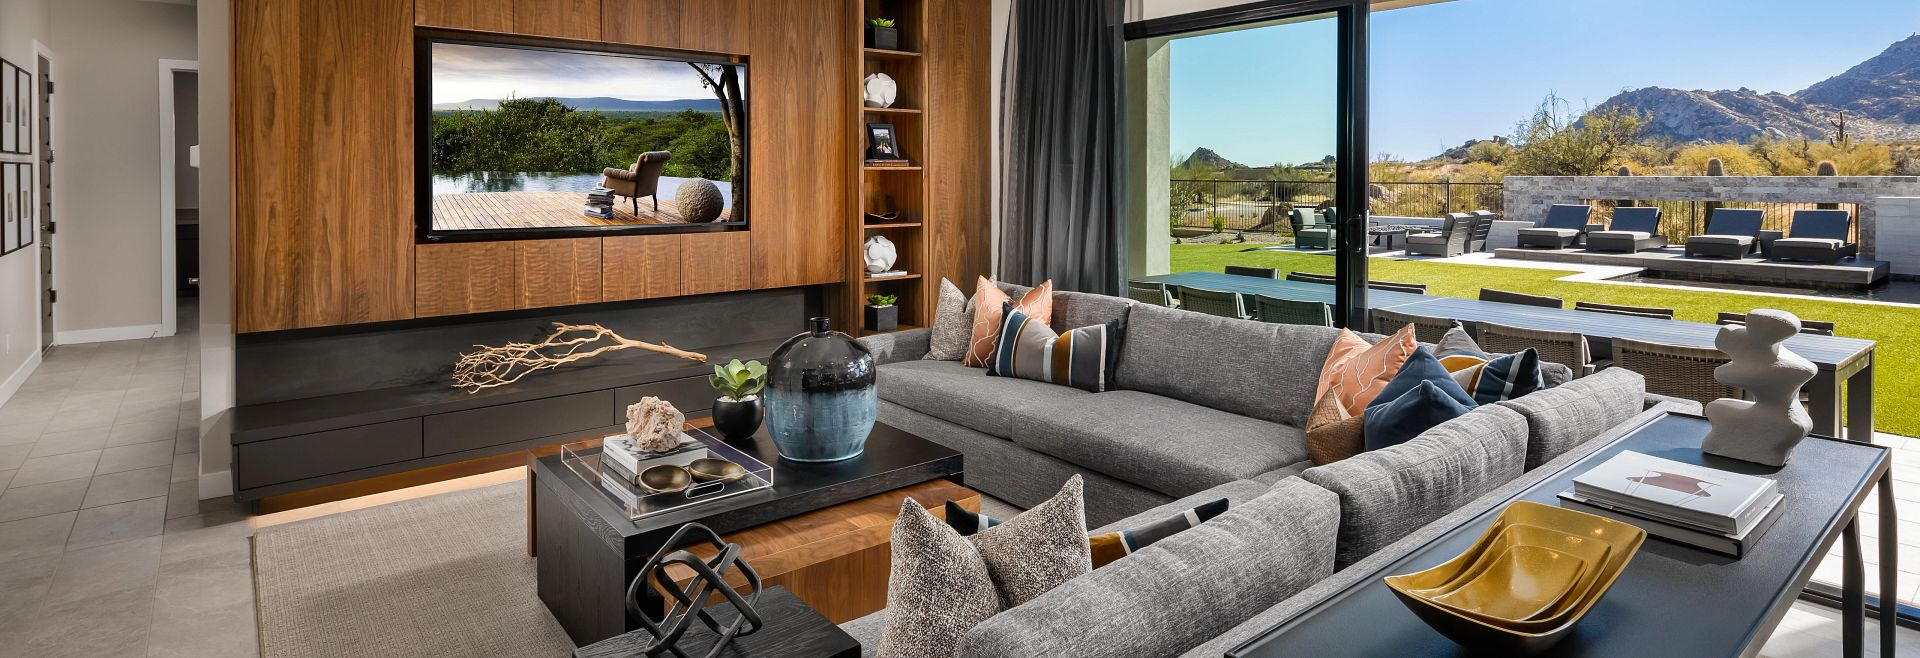 Living area in Prelude at Storyrock plan 7524